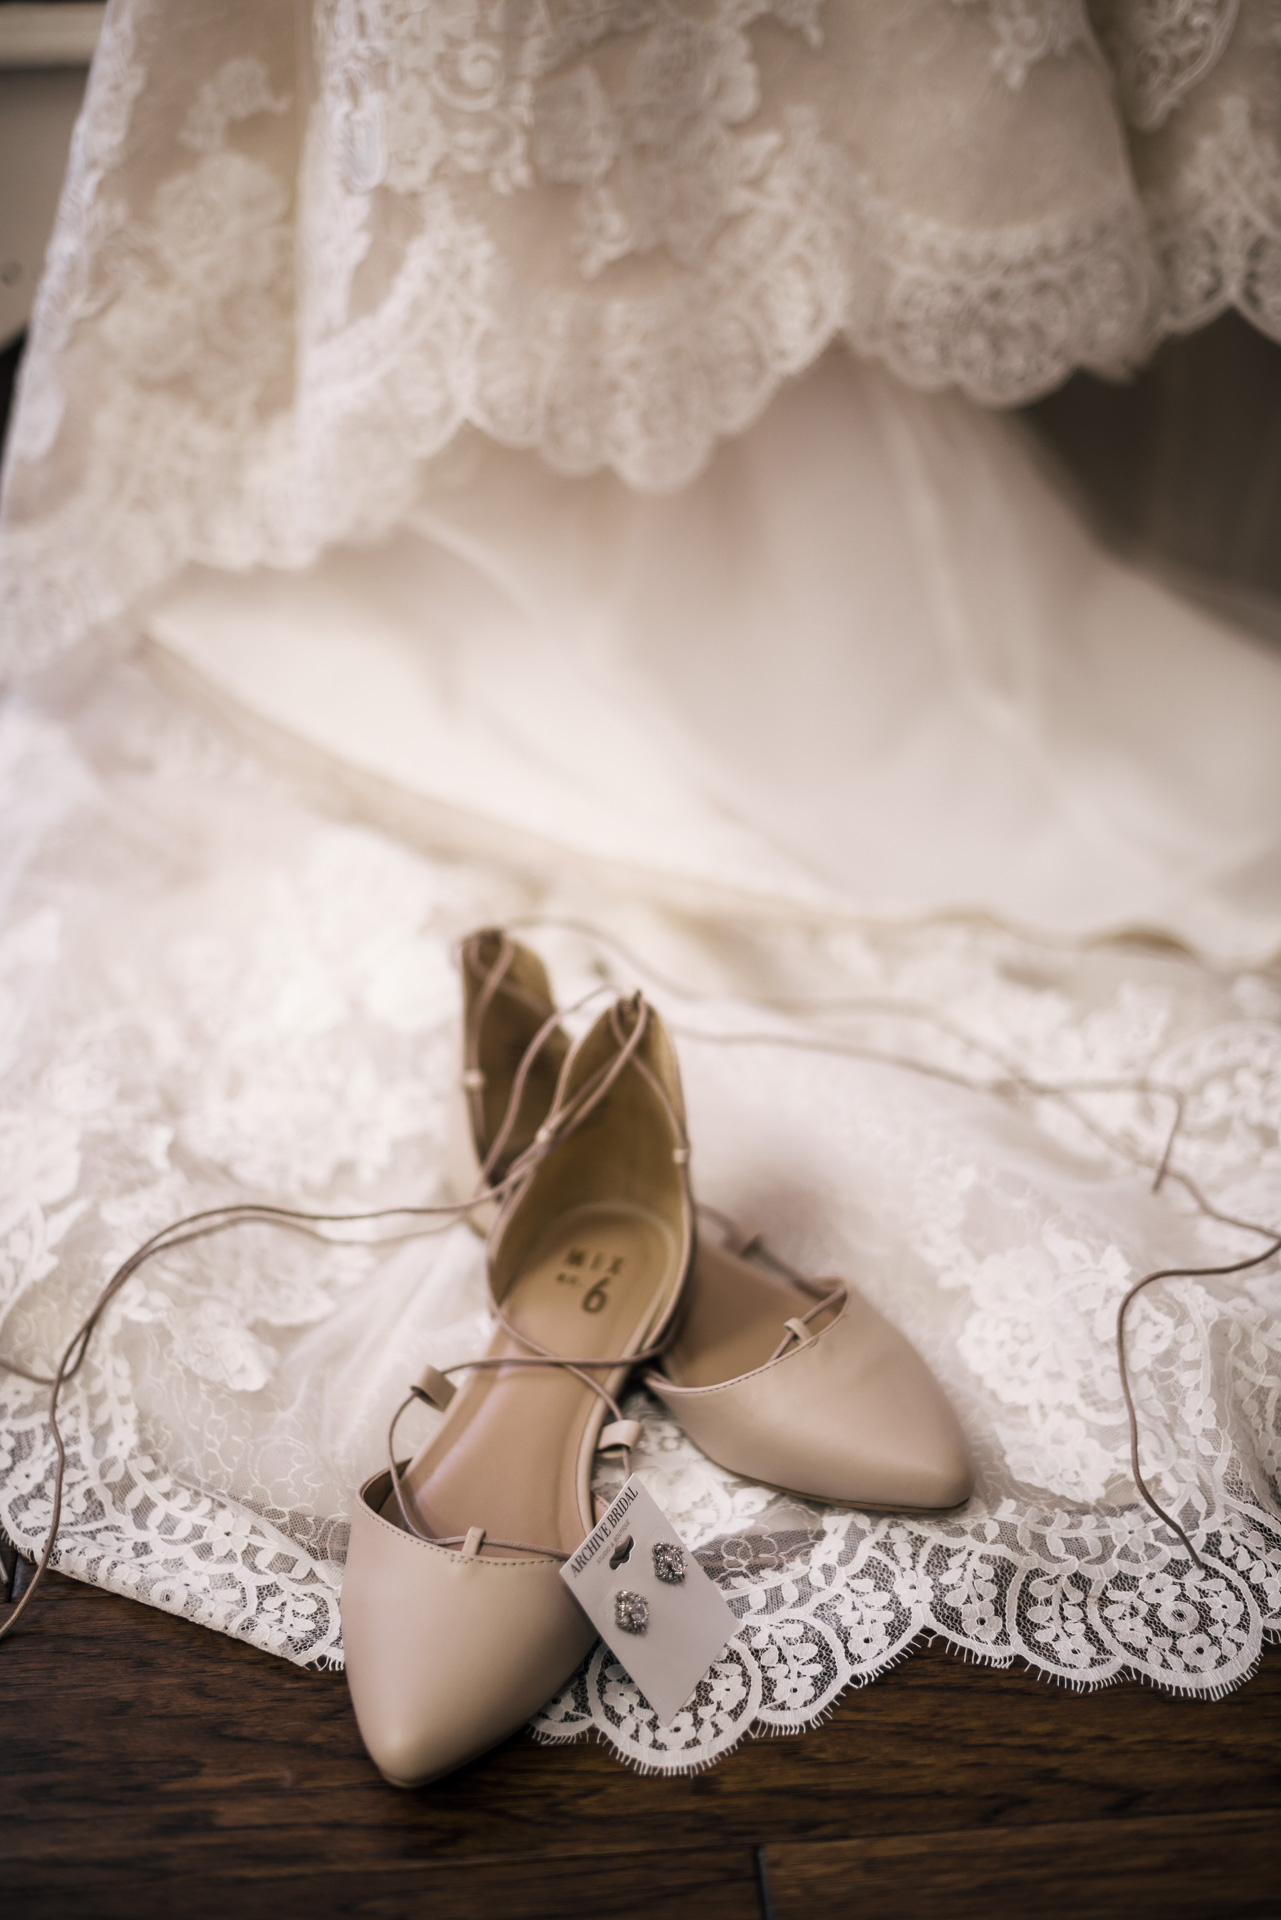 wedding shoes and jewlery displayed in front of brides dress at the secret garden located at the Historic Parish ranch in Oak Glen California